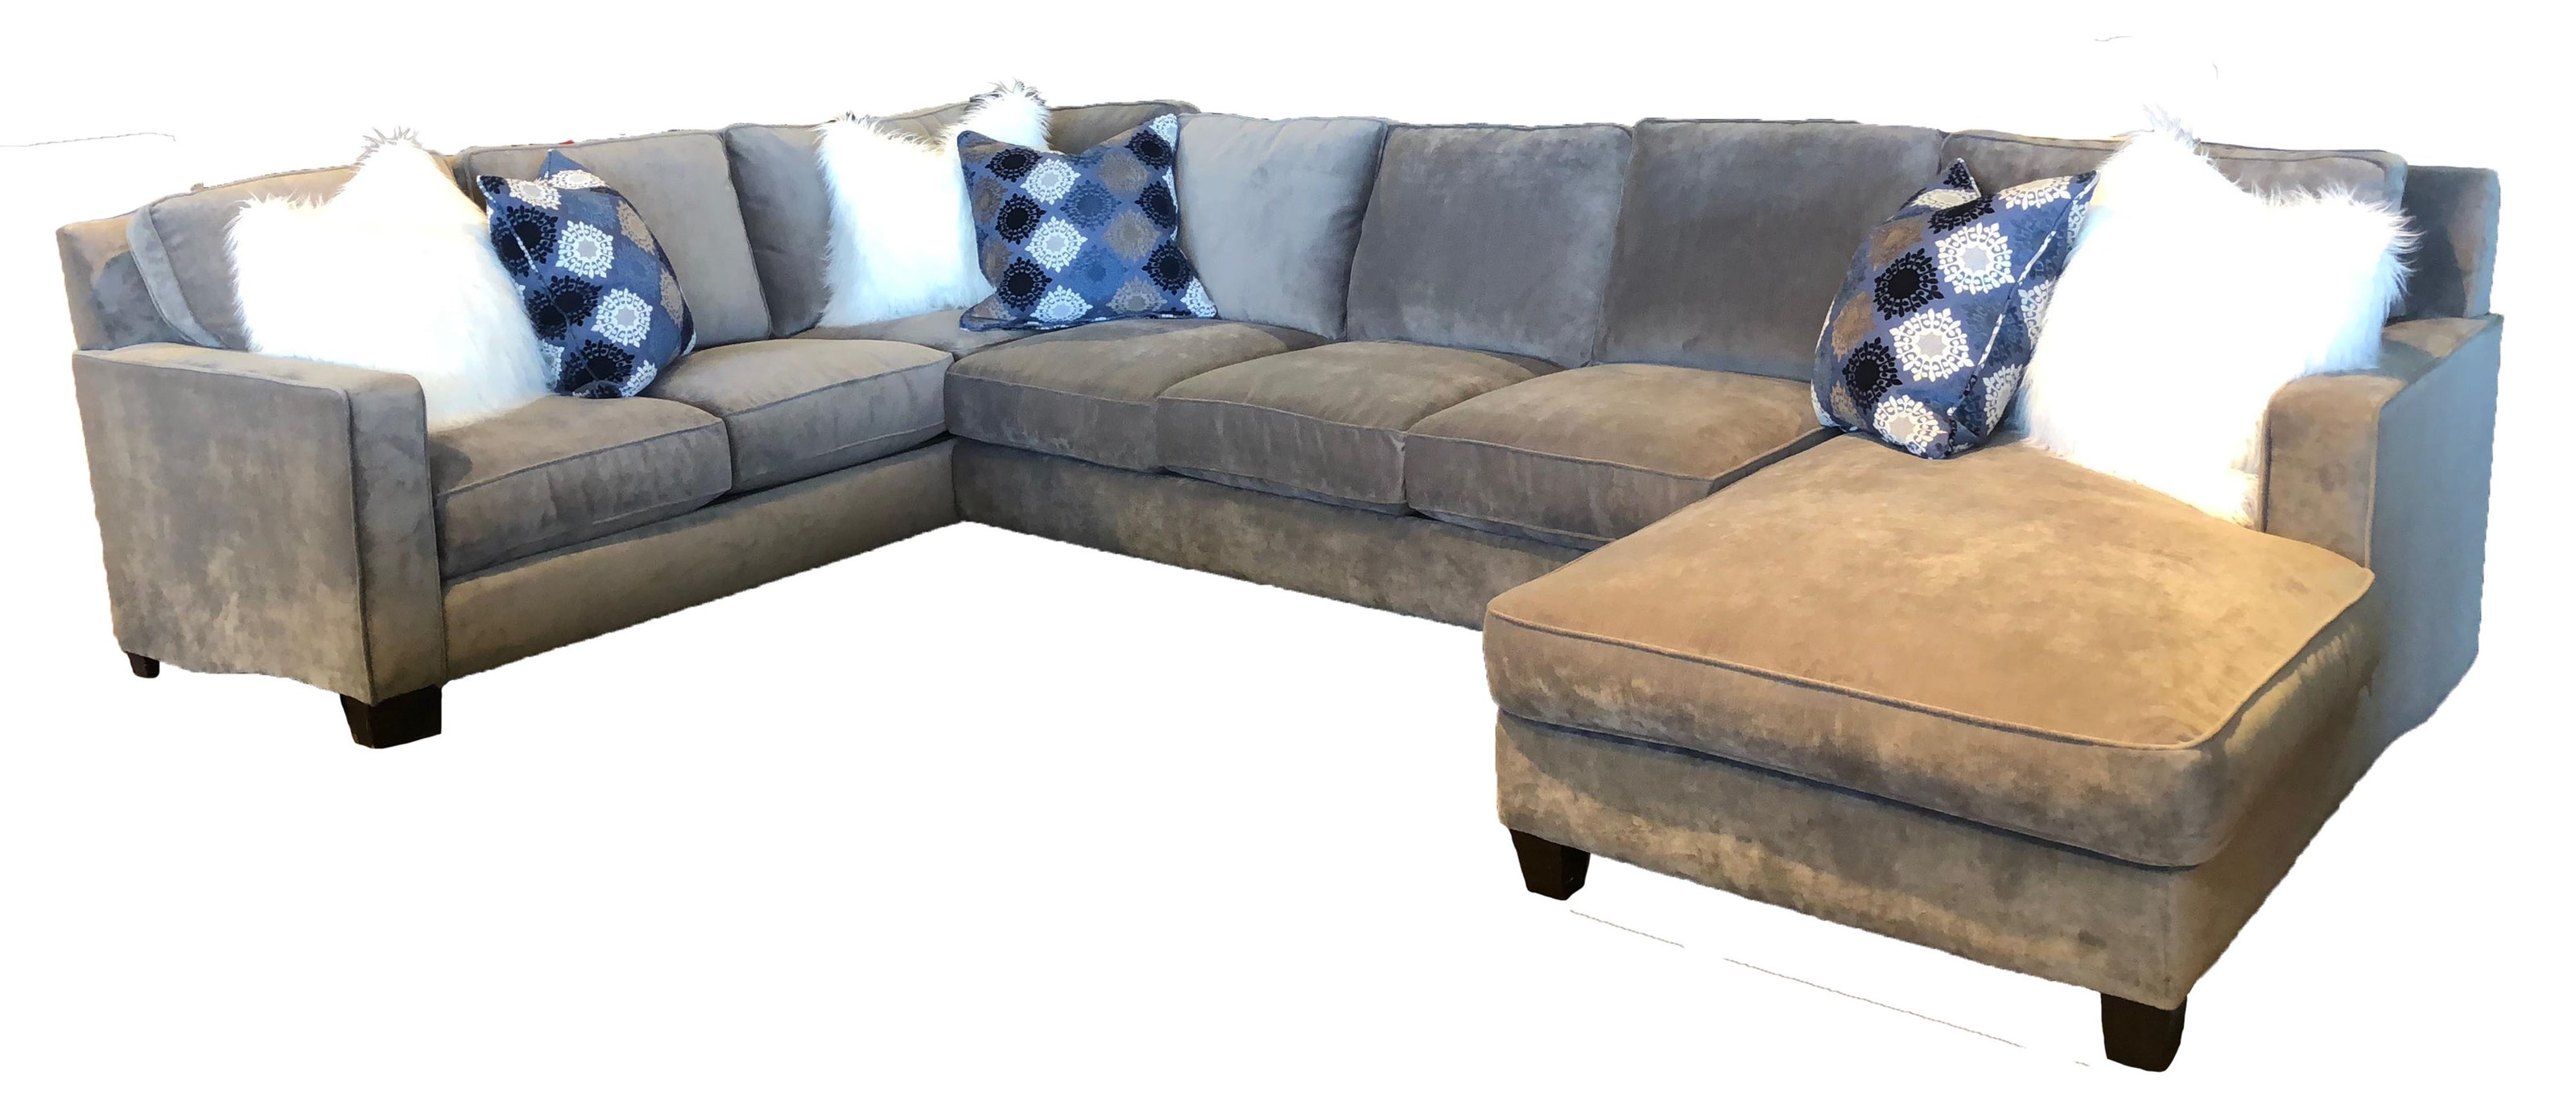 Reeds Trading Company 1000 1000 3 Piece Down Sectional - Item Number: 1000 3 Piece Down Sectional